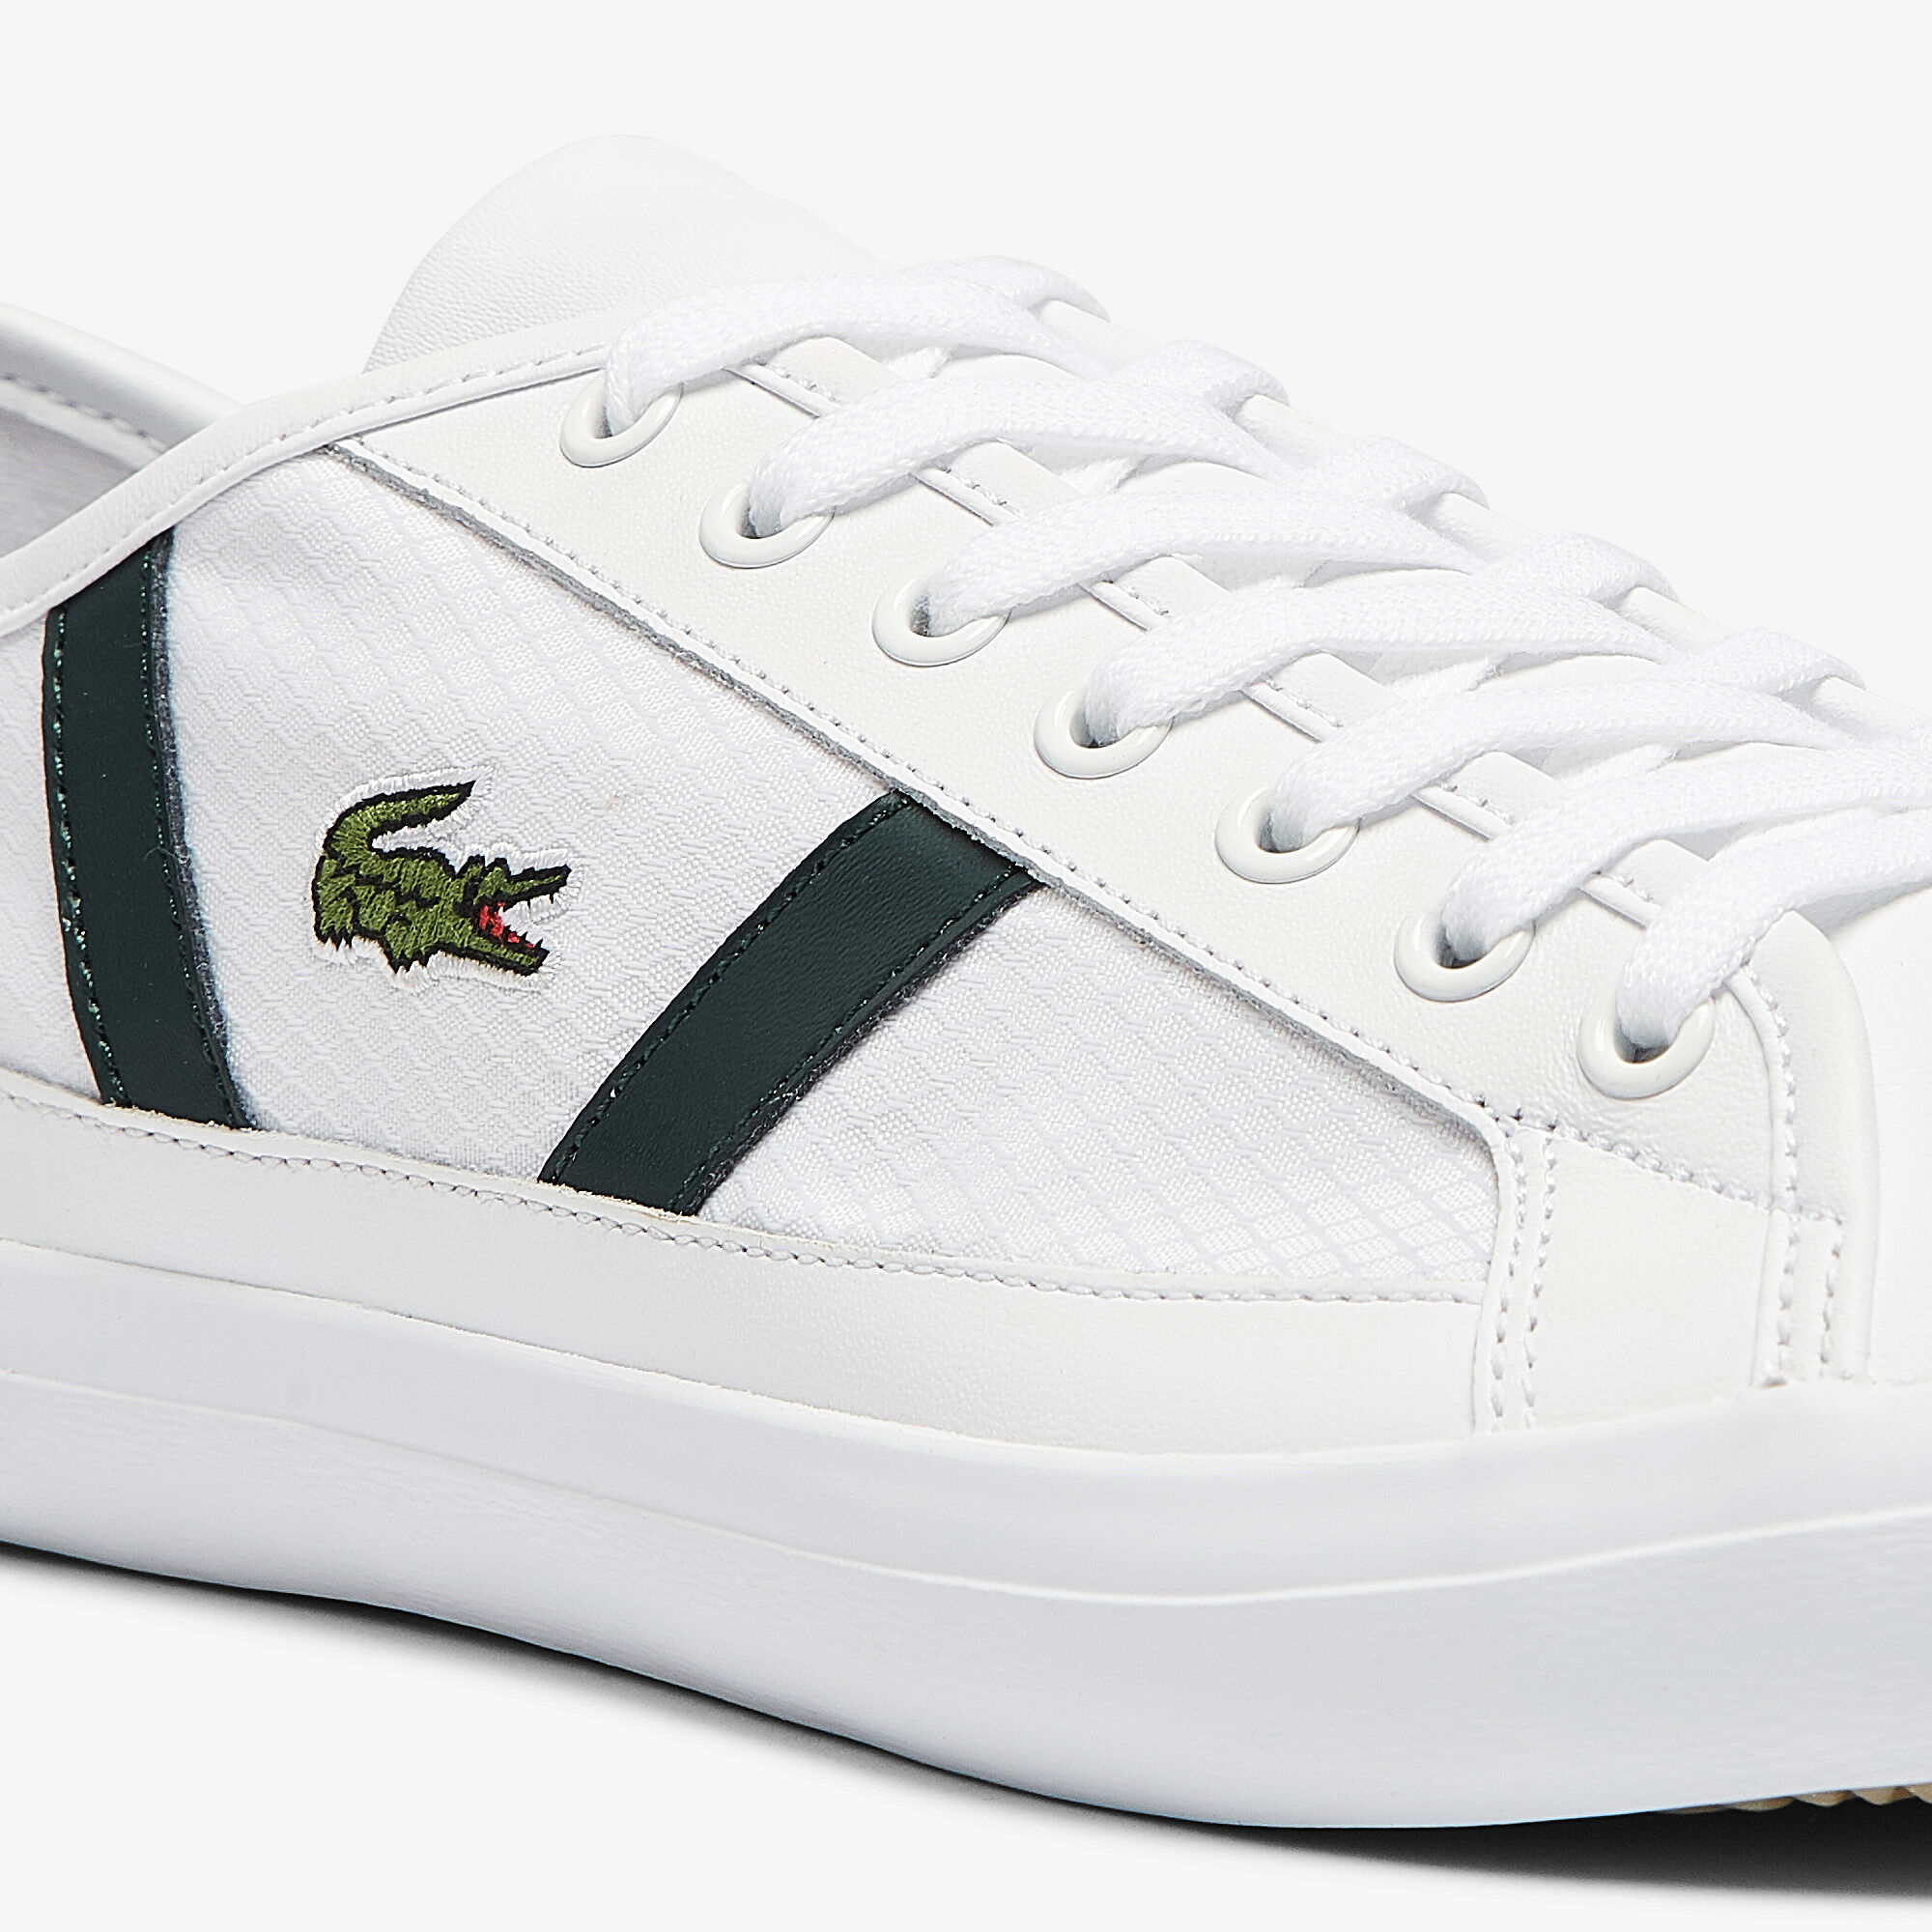 Men's Sideline Textile and Leather Trainers